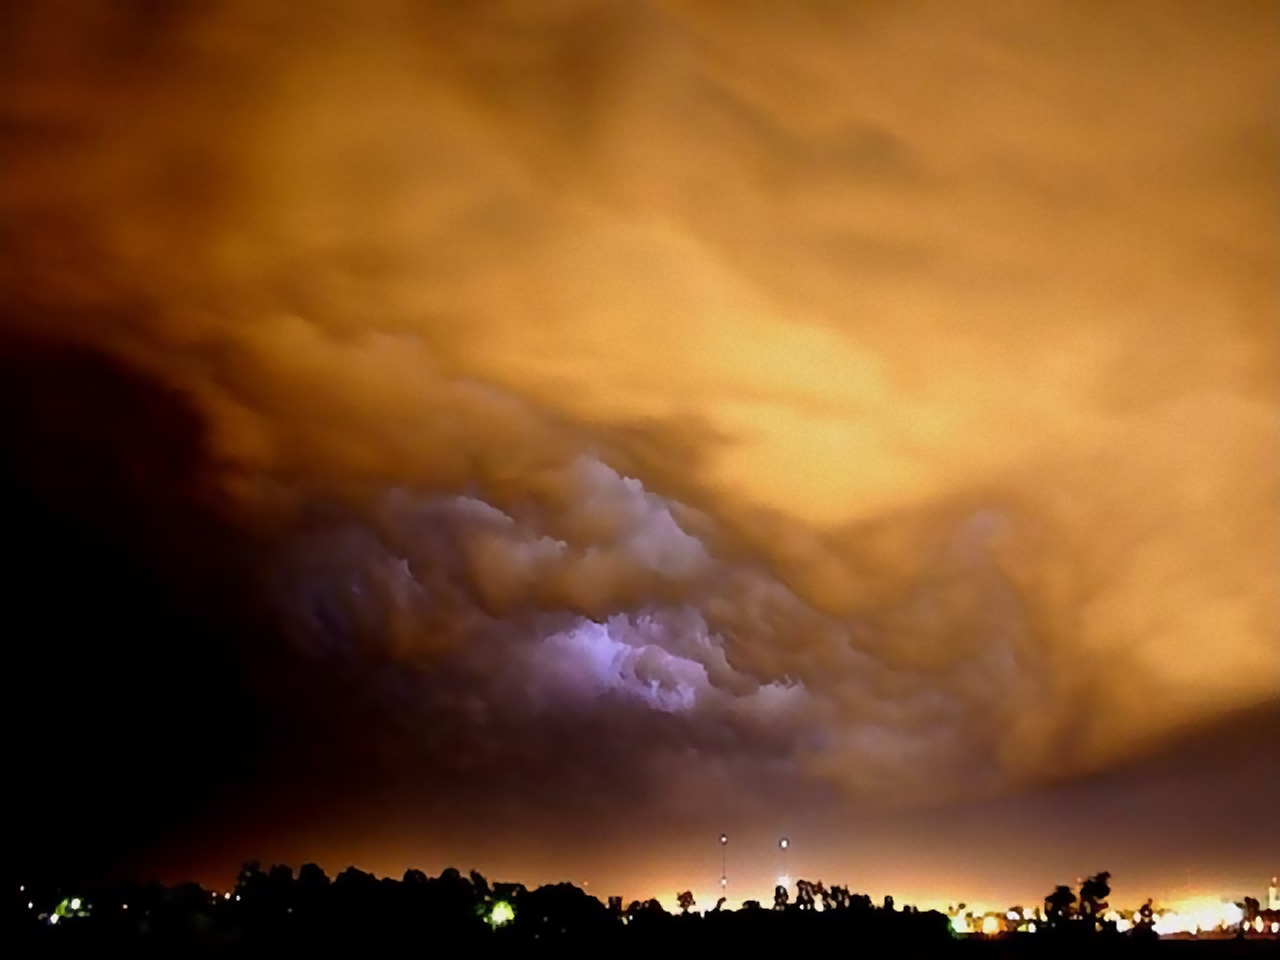 billowing-storm-clouds-over-houses